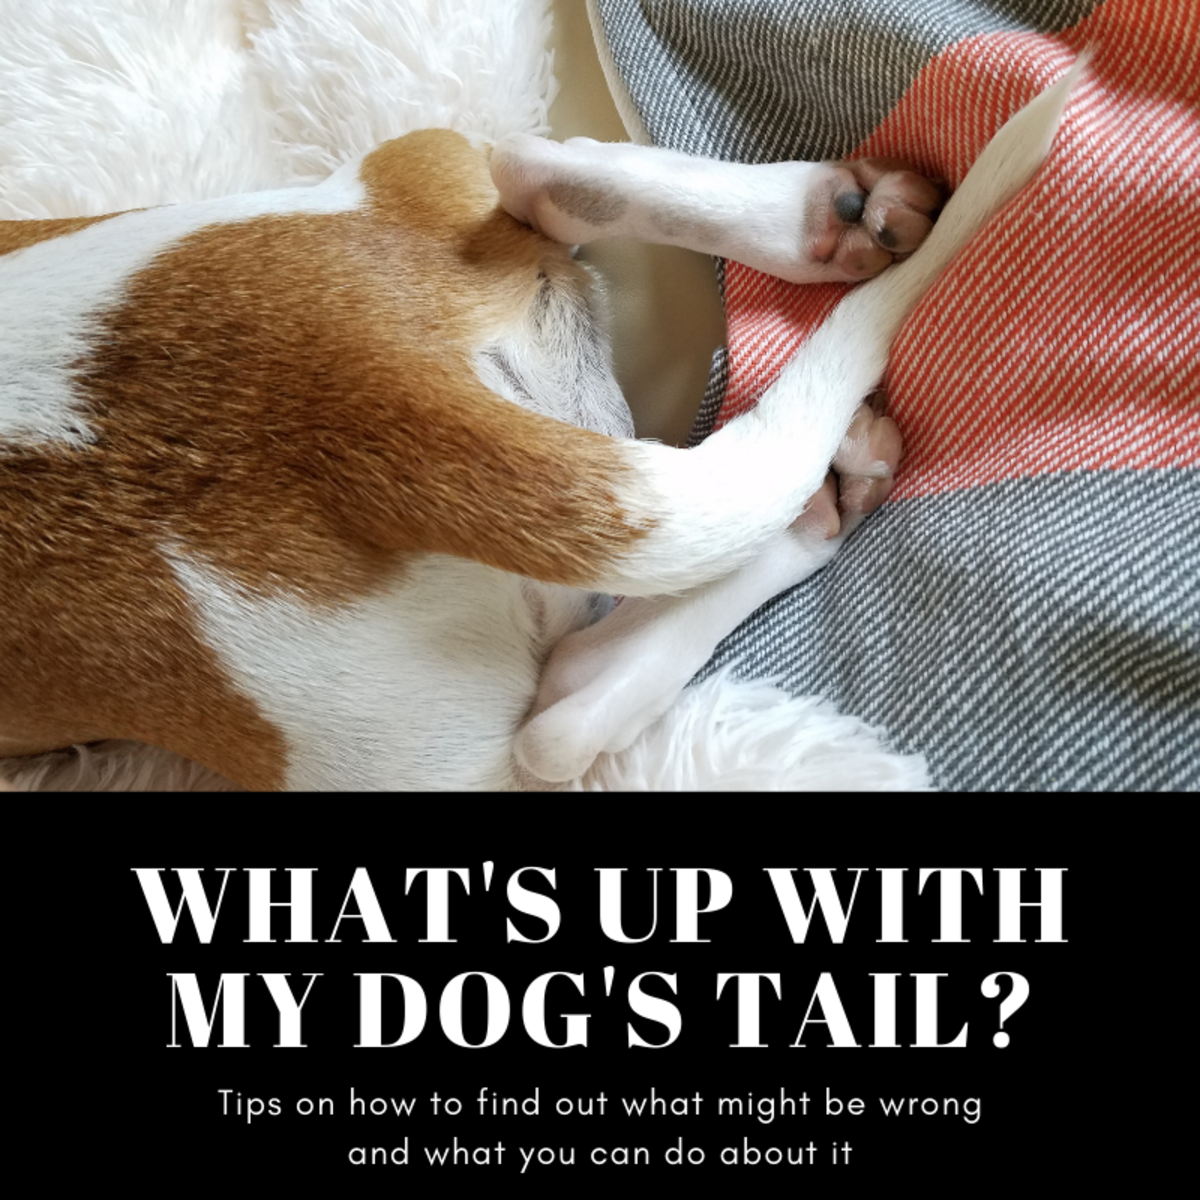 What's Wrong With My Dog's Tail?